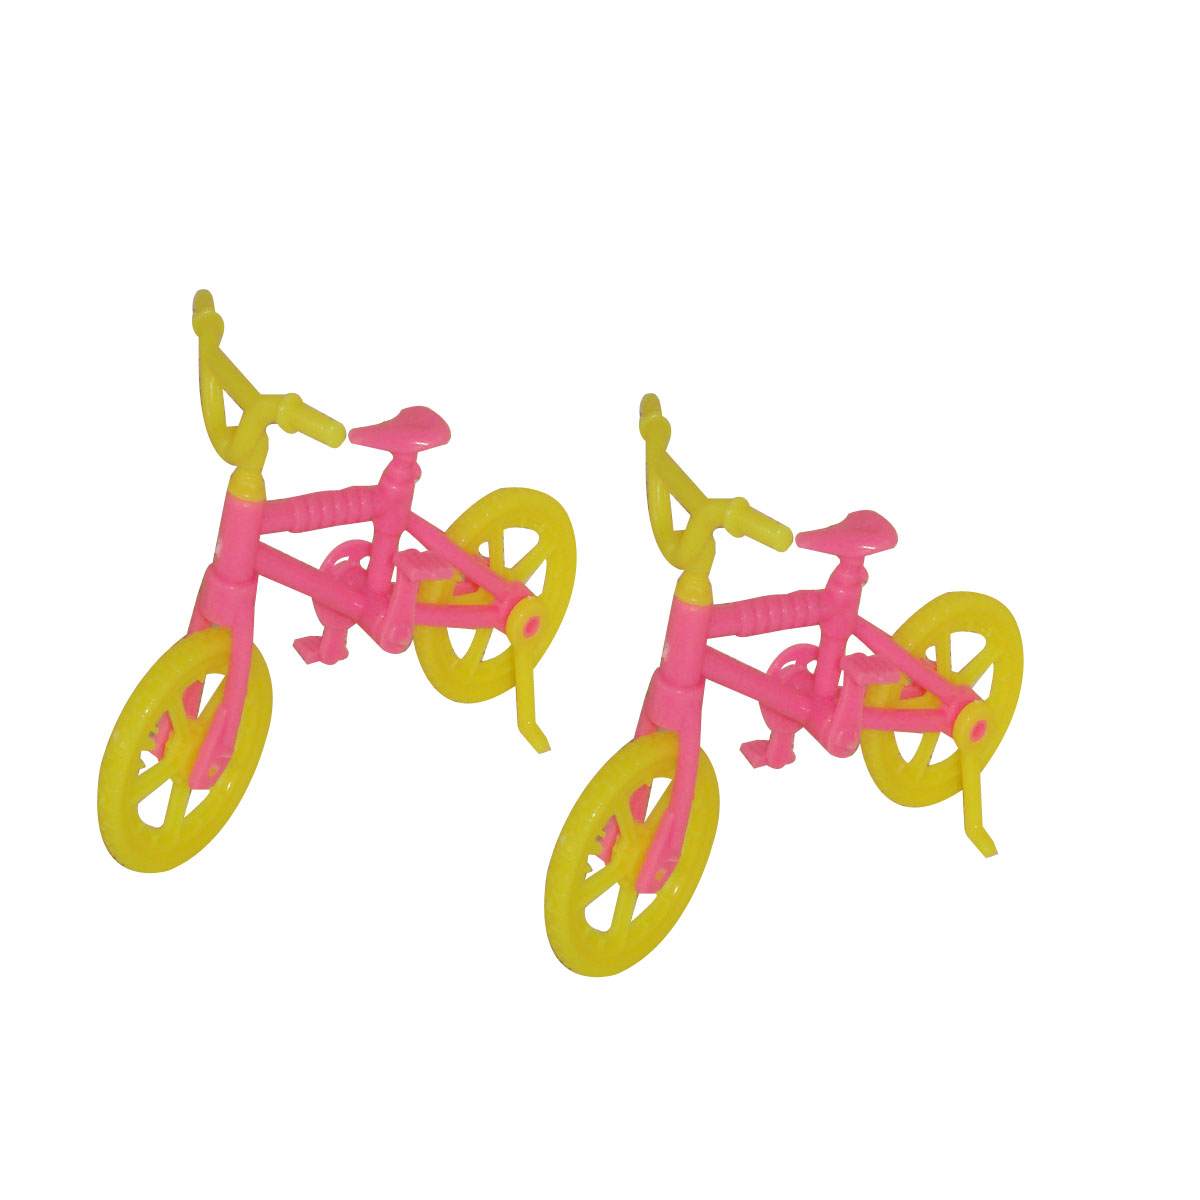 Bicycle Furniture Compare Prices On Bicycle Furniture Online Shopping Buy Low Price